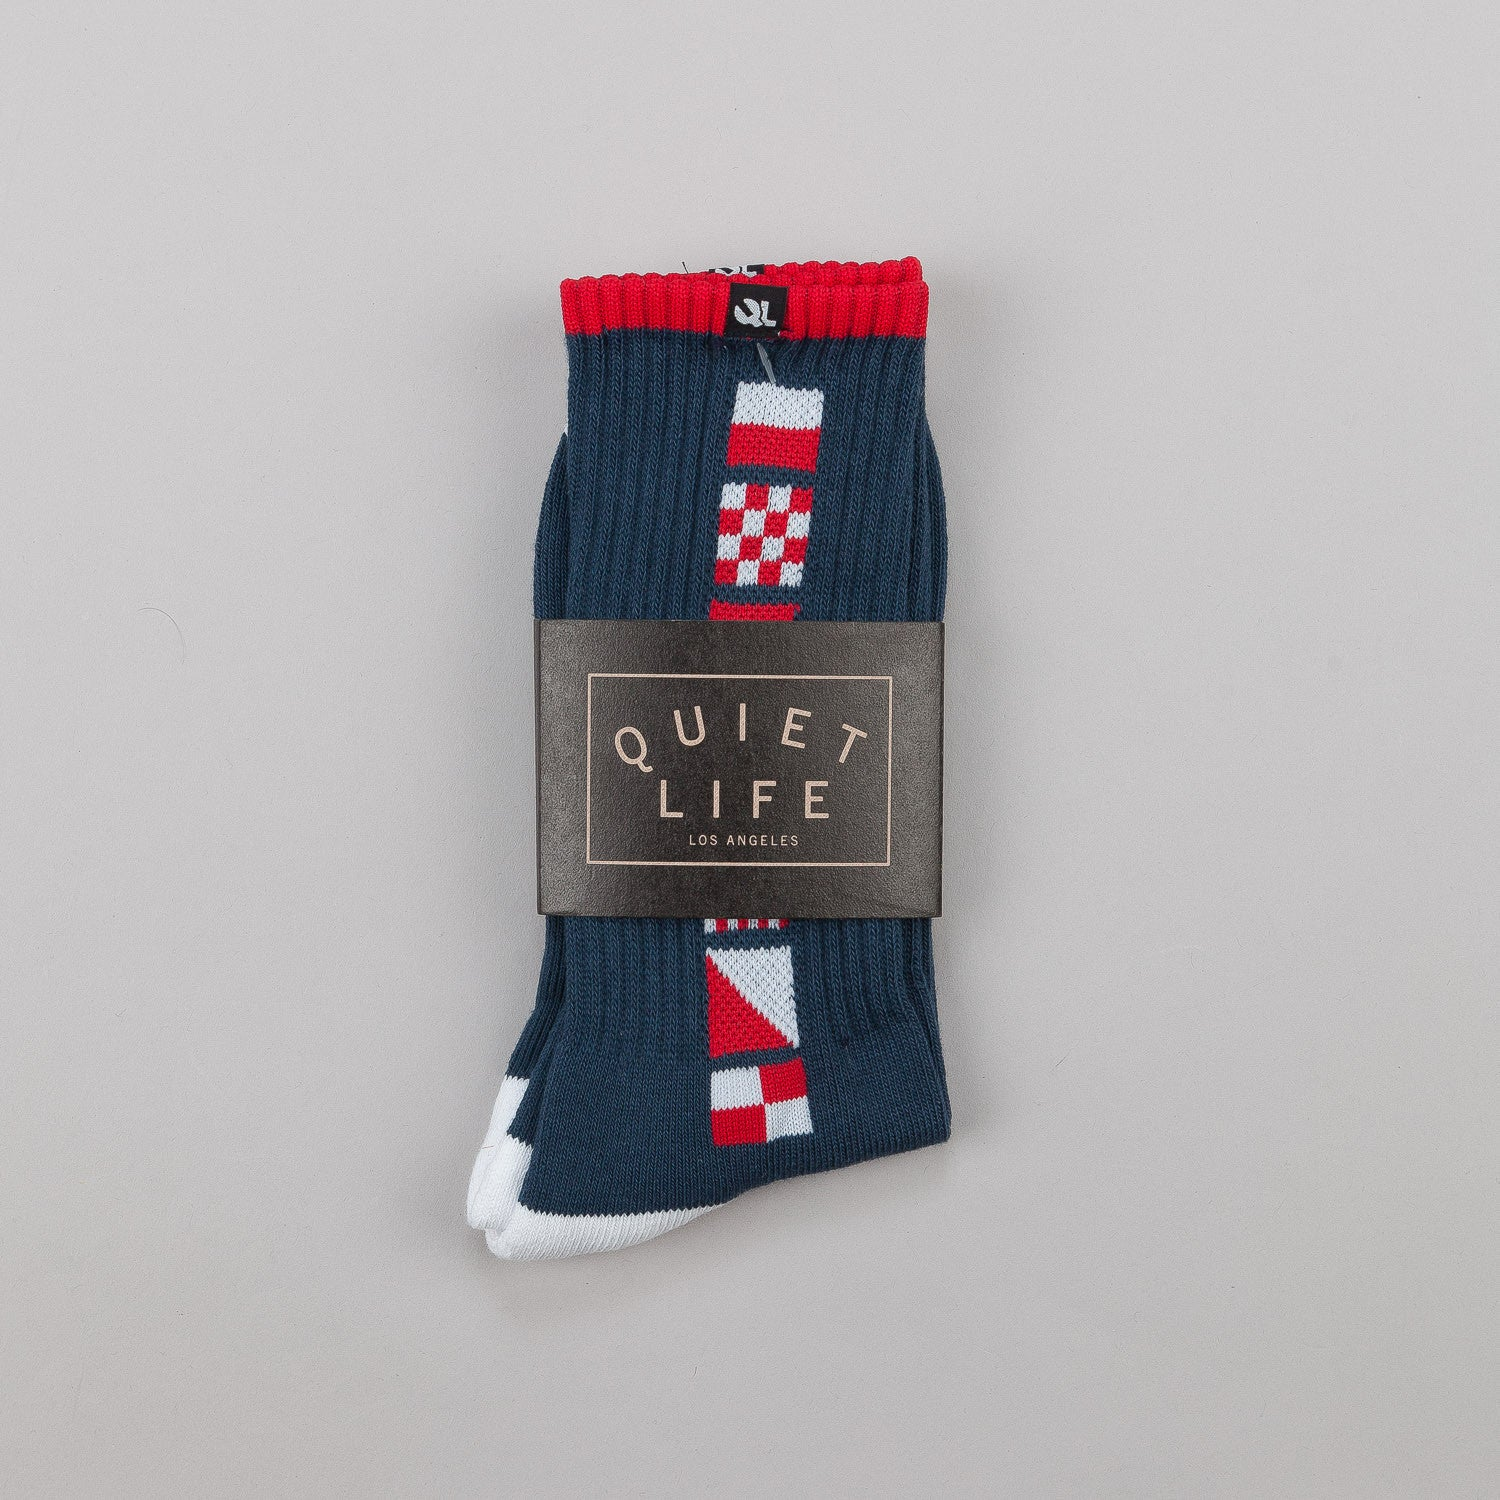 The Quiet Life Flagship Socks